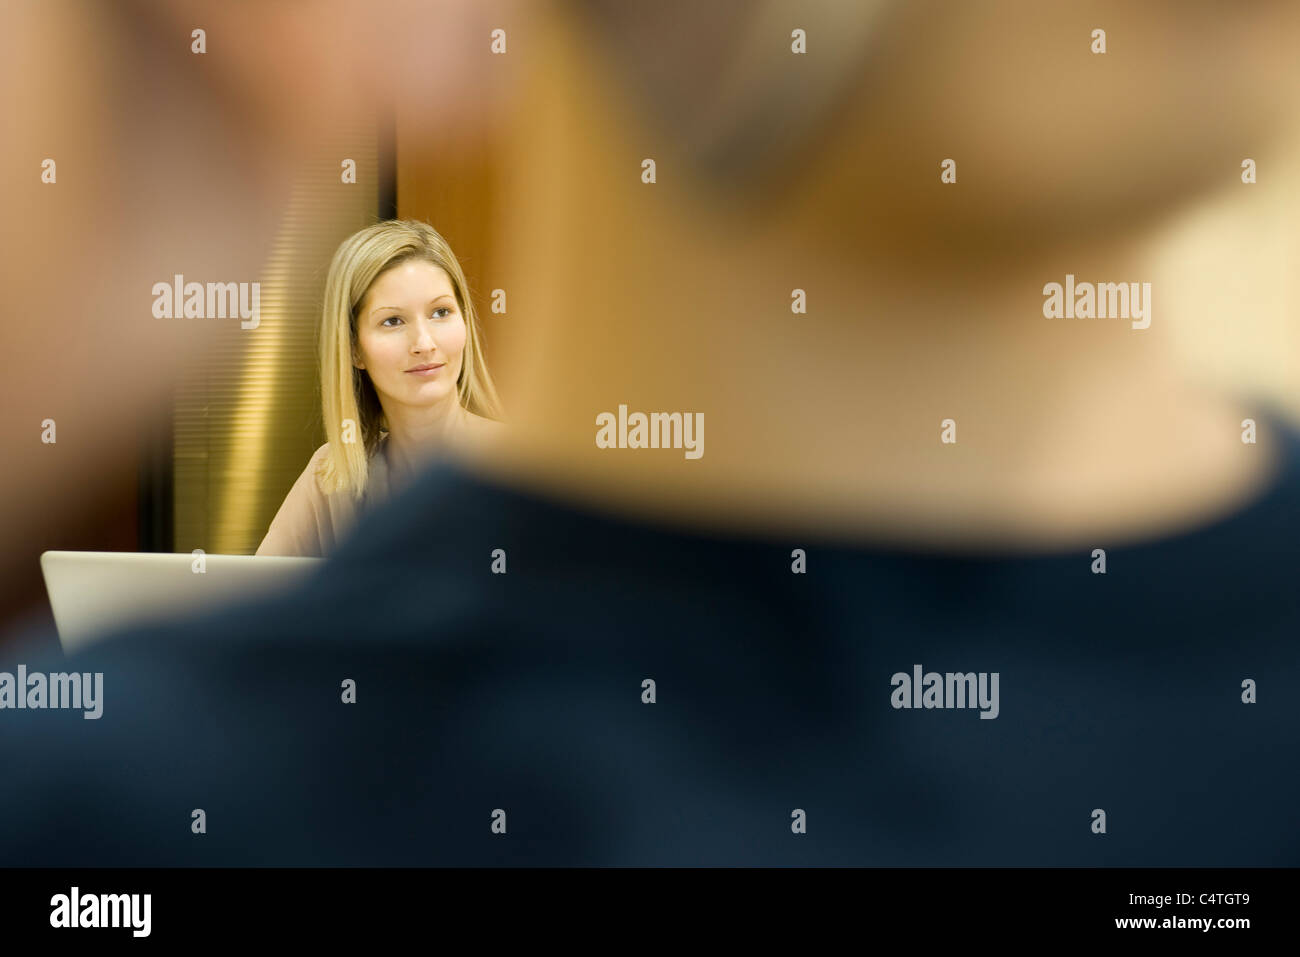 Woman looking away in thought, man in foreground - Stock Image